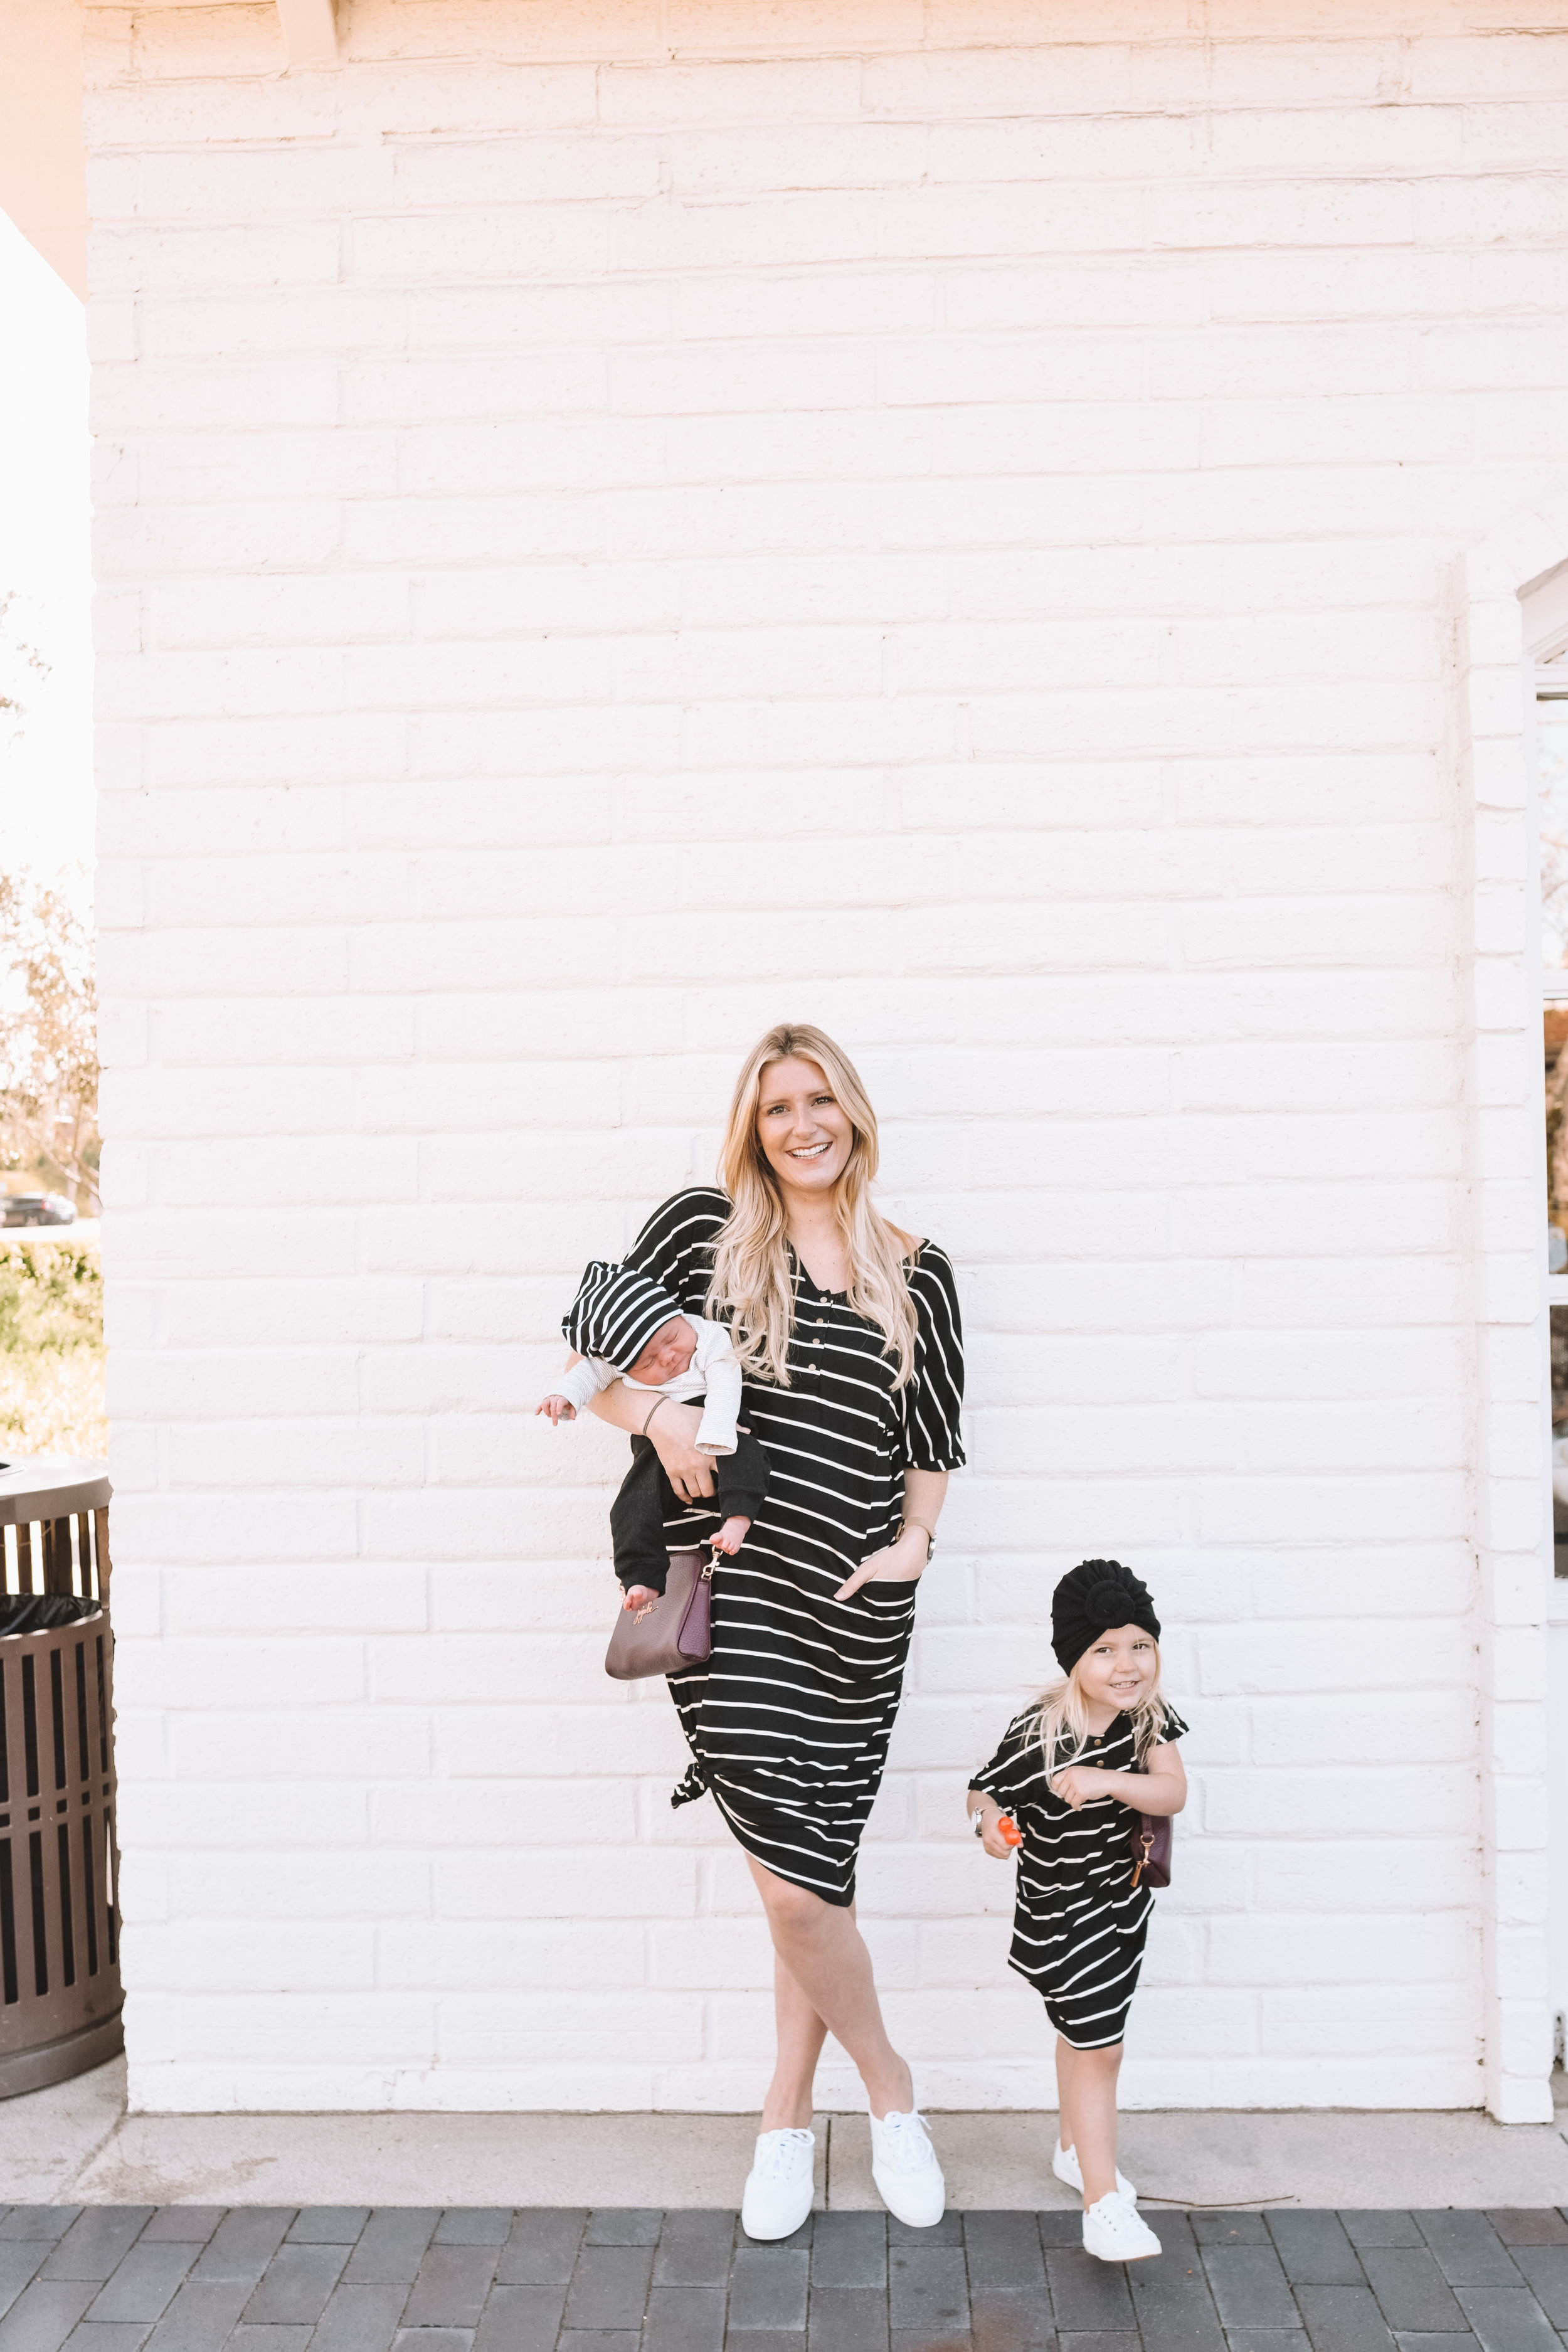 Mom and Son Daughter Matching Clothes - Mommy and Me Fashion - The Overwhelmed Mommy Blogger